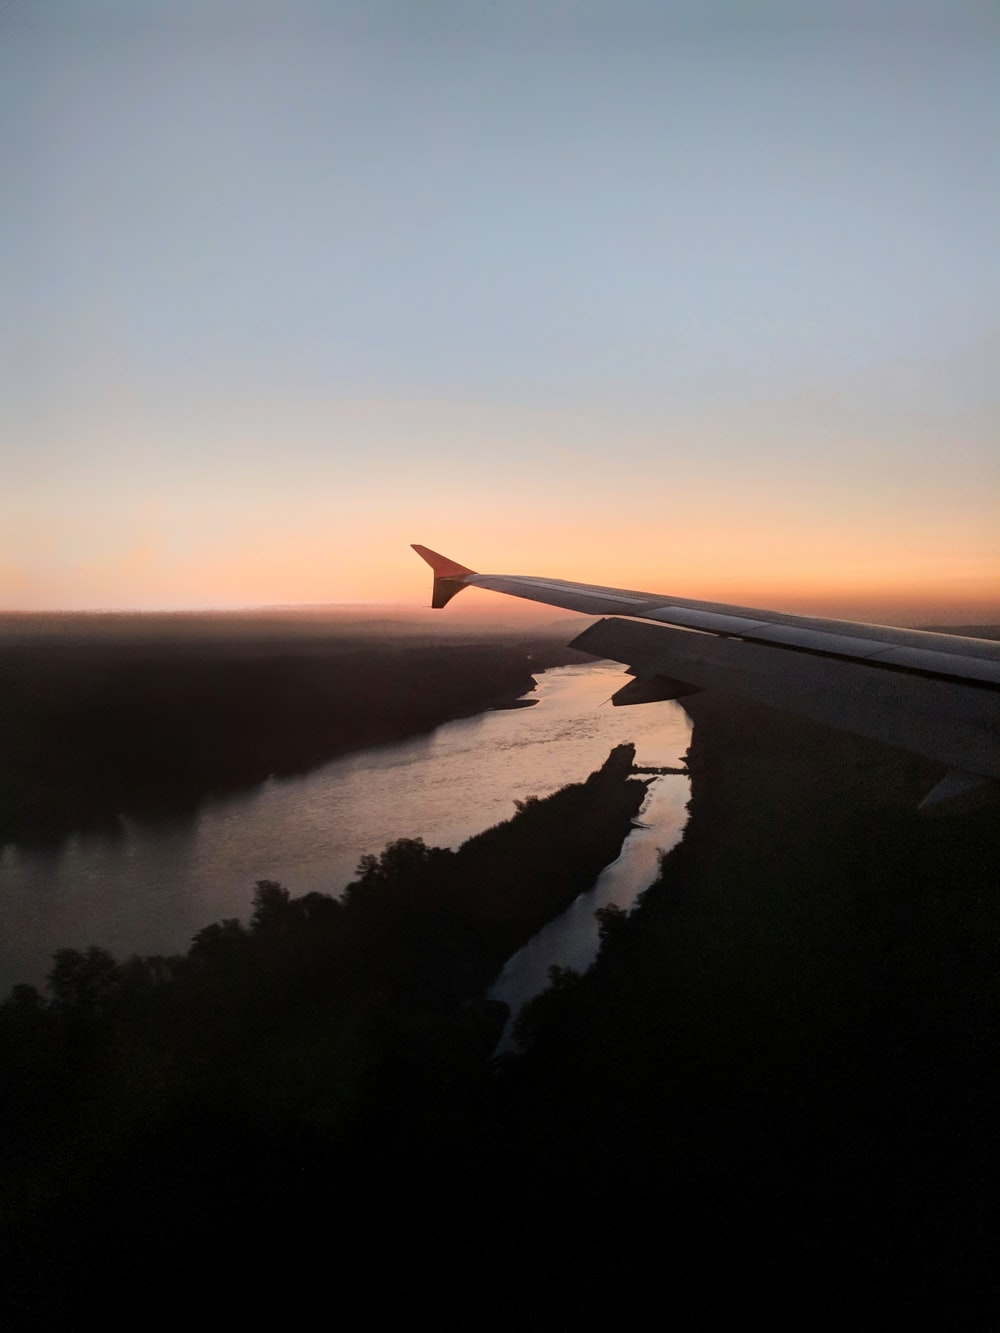 aircraft wingtip overlooking river at night time